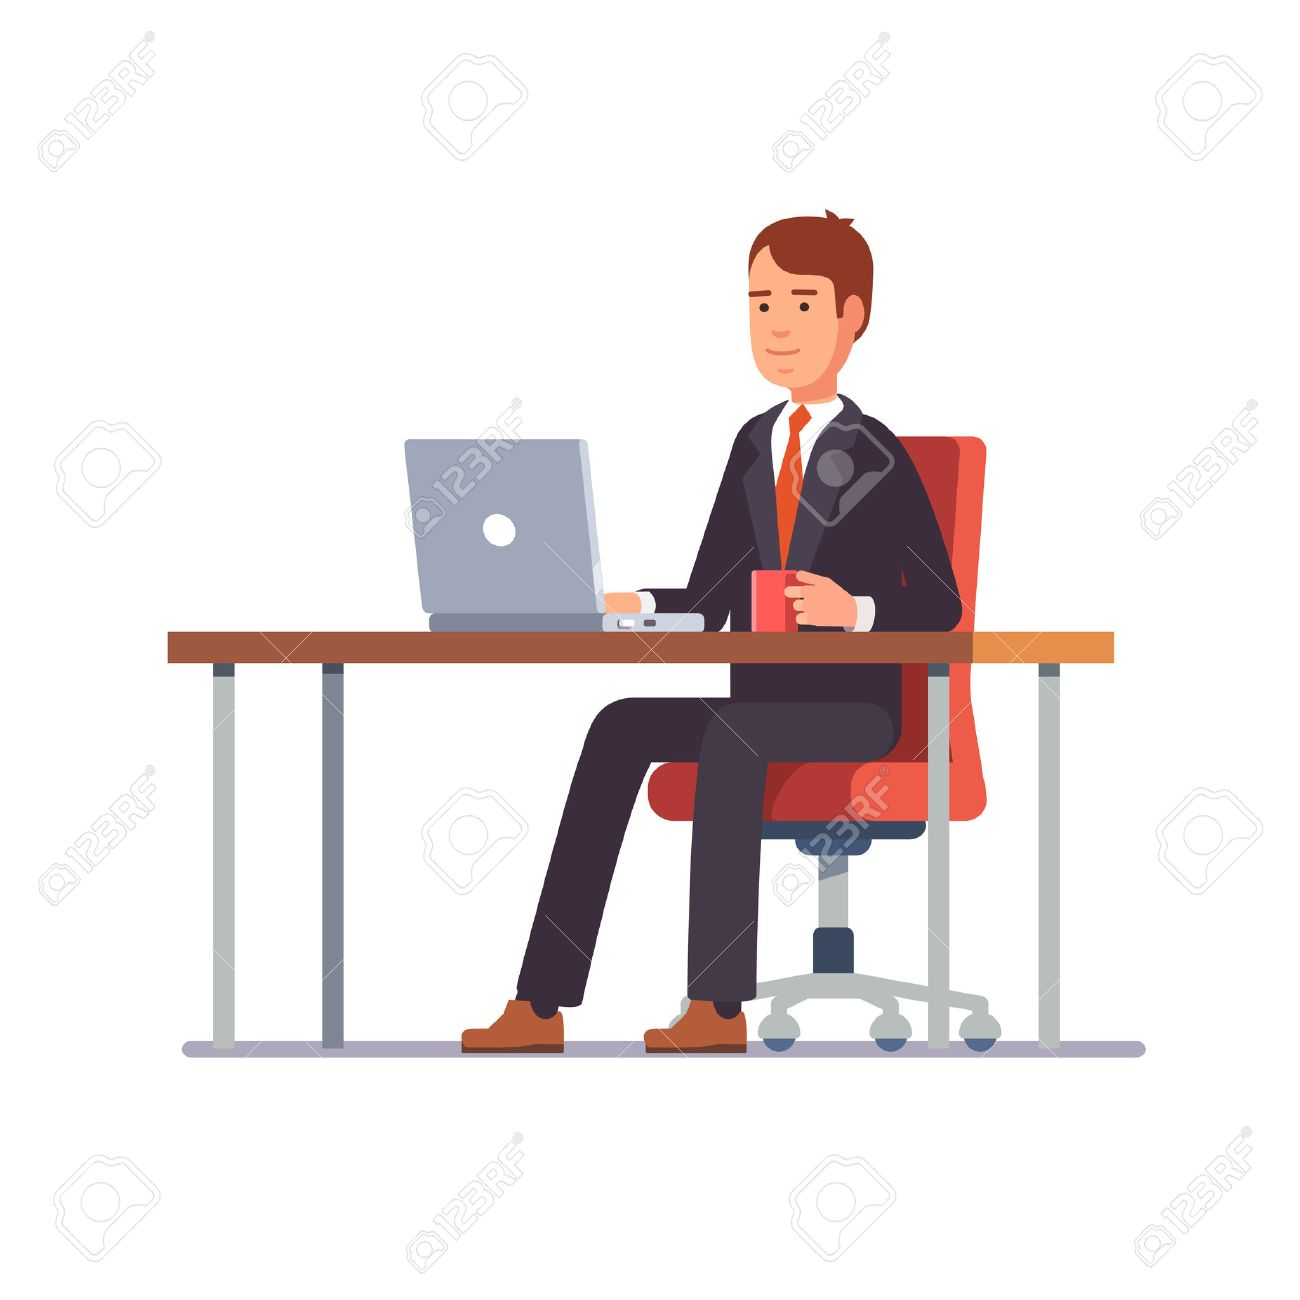 Business man entrepreneur in a suit working on a laptop computer at his clean and sleek office desk. Flat style color modern vector illustration. - 67653476